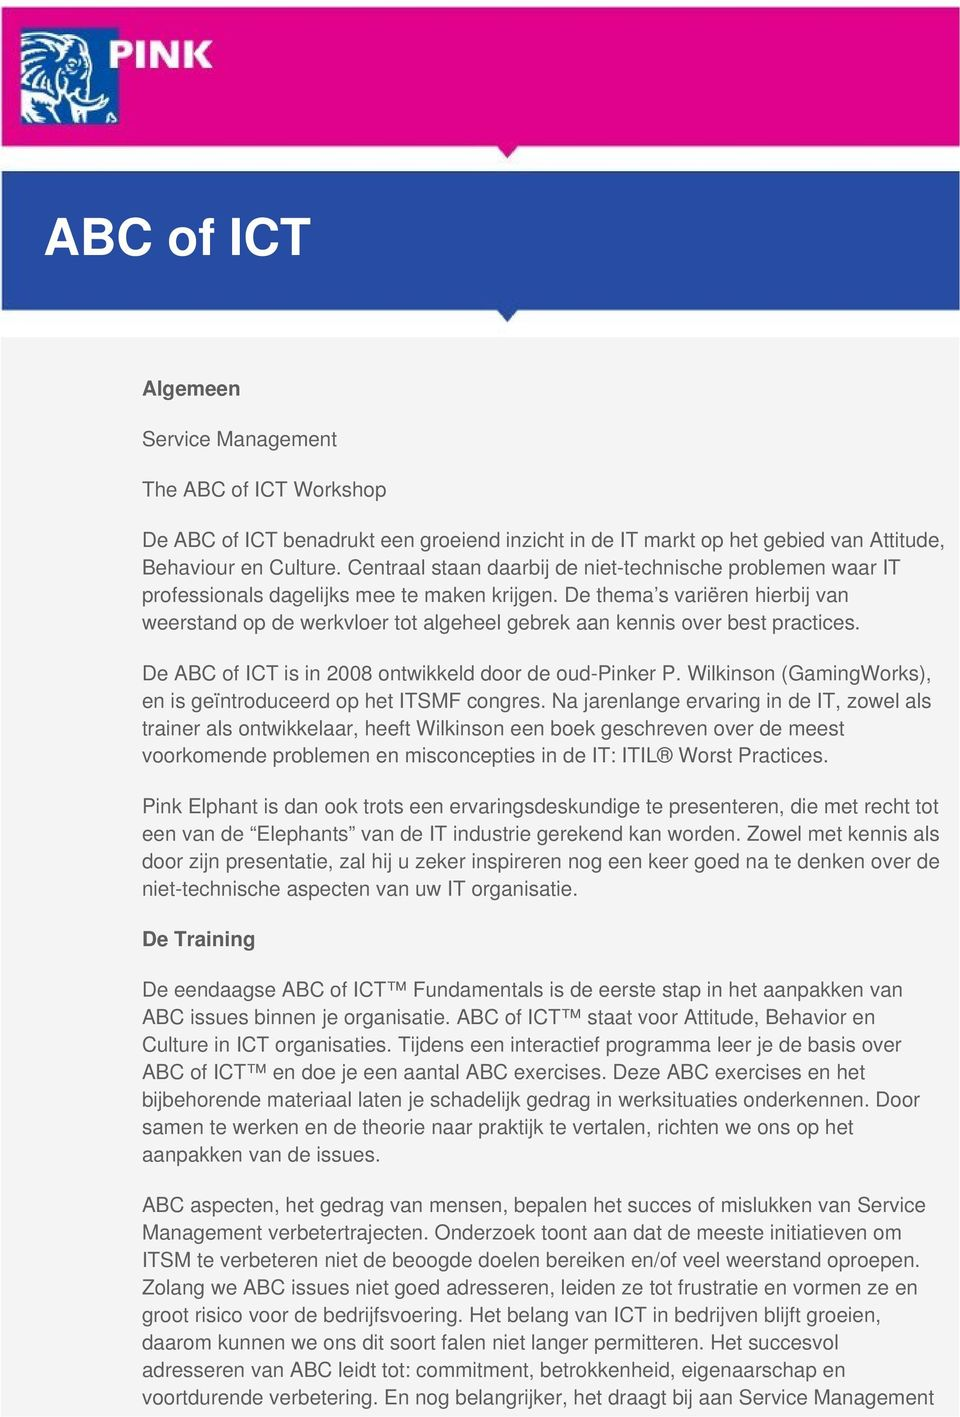 De thema s variëren hierbij van weerstand op de werkvloer tot algeheel gebrek aan kennis over best practices. De ABC of ICT is in 2008 ontwikkeld door de oud-pinker P.